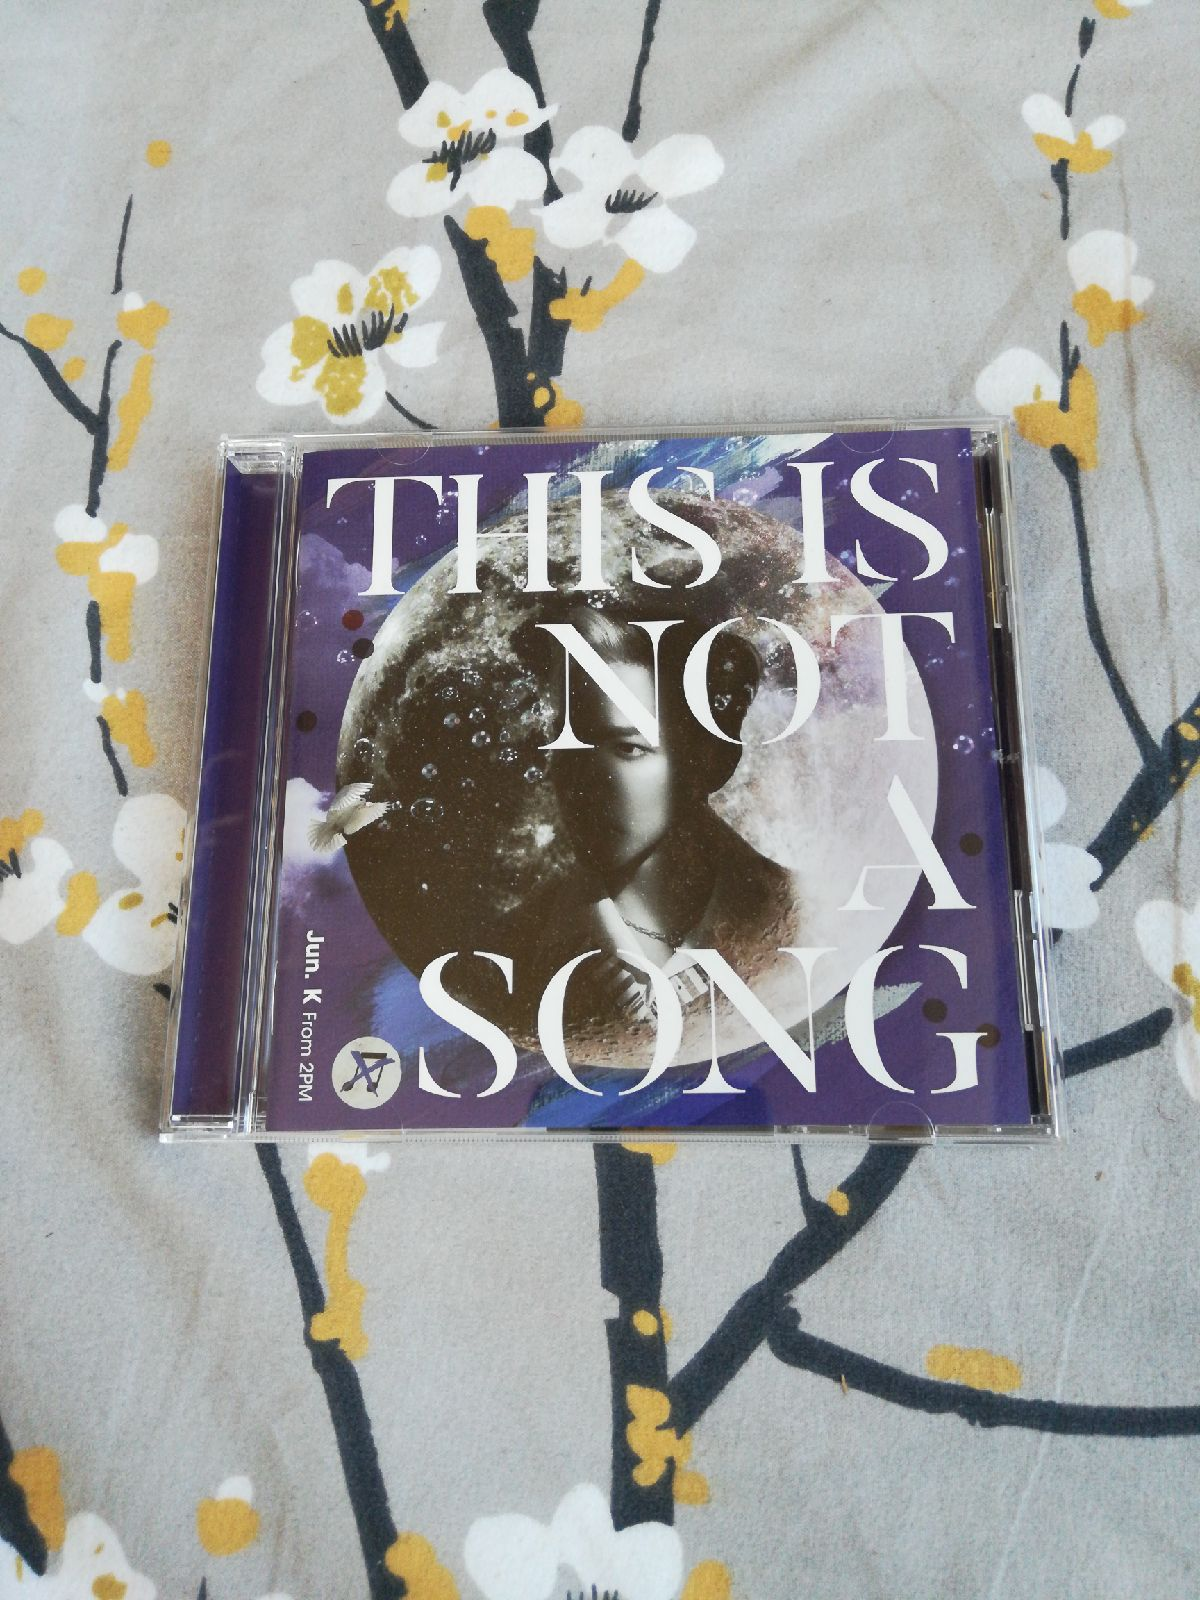 2PM Jun. K this is not a song Japan cd